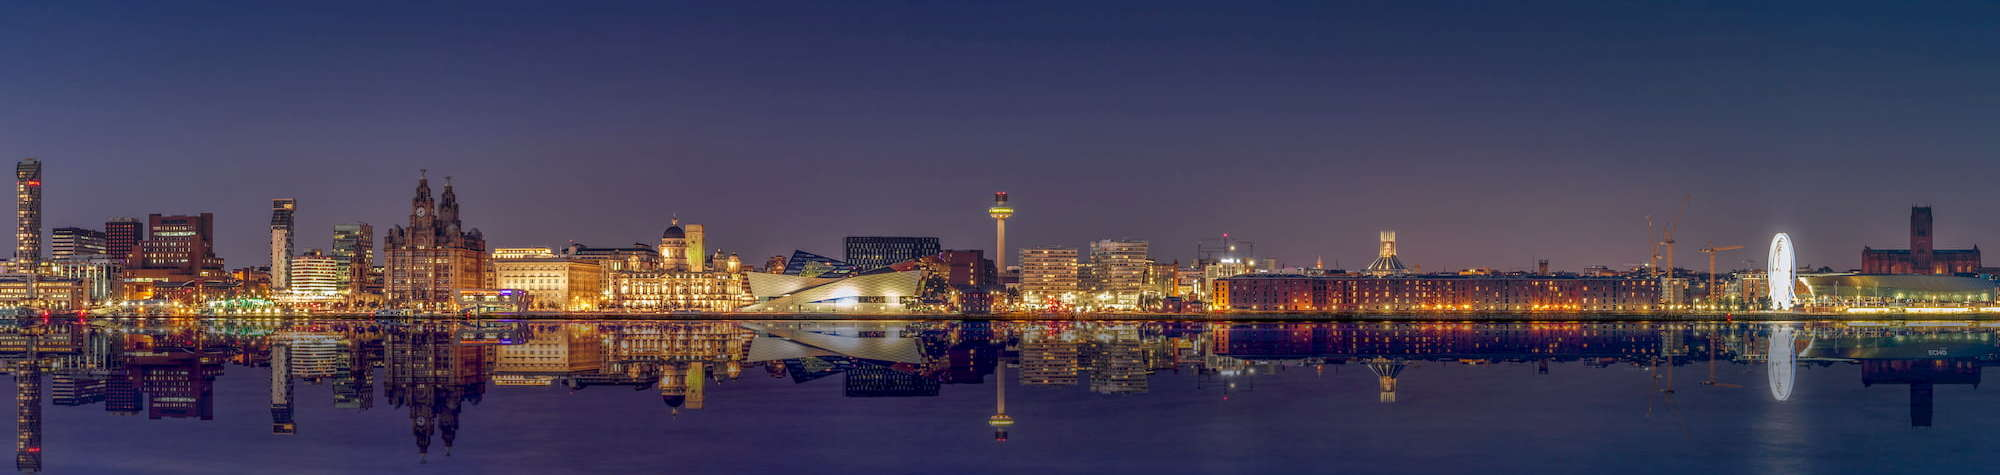 Liverpool Recruitment Agency Header Image. Featuring Liverpool World Heritage Centre and other landmark buildings along the Liverpool Waterfront. Liverpool is home to one of Search Consultancy's exceptional recruitment agencies in England.